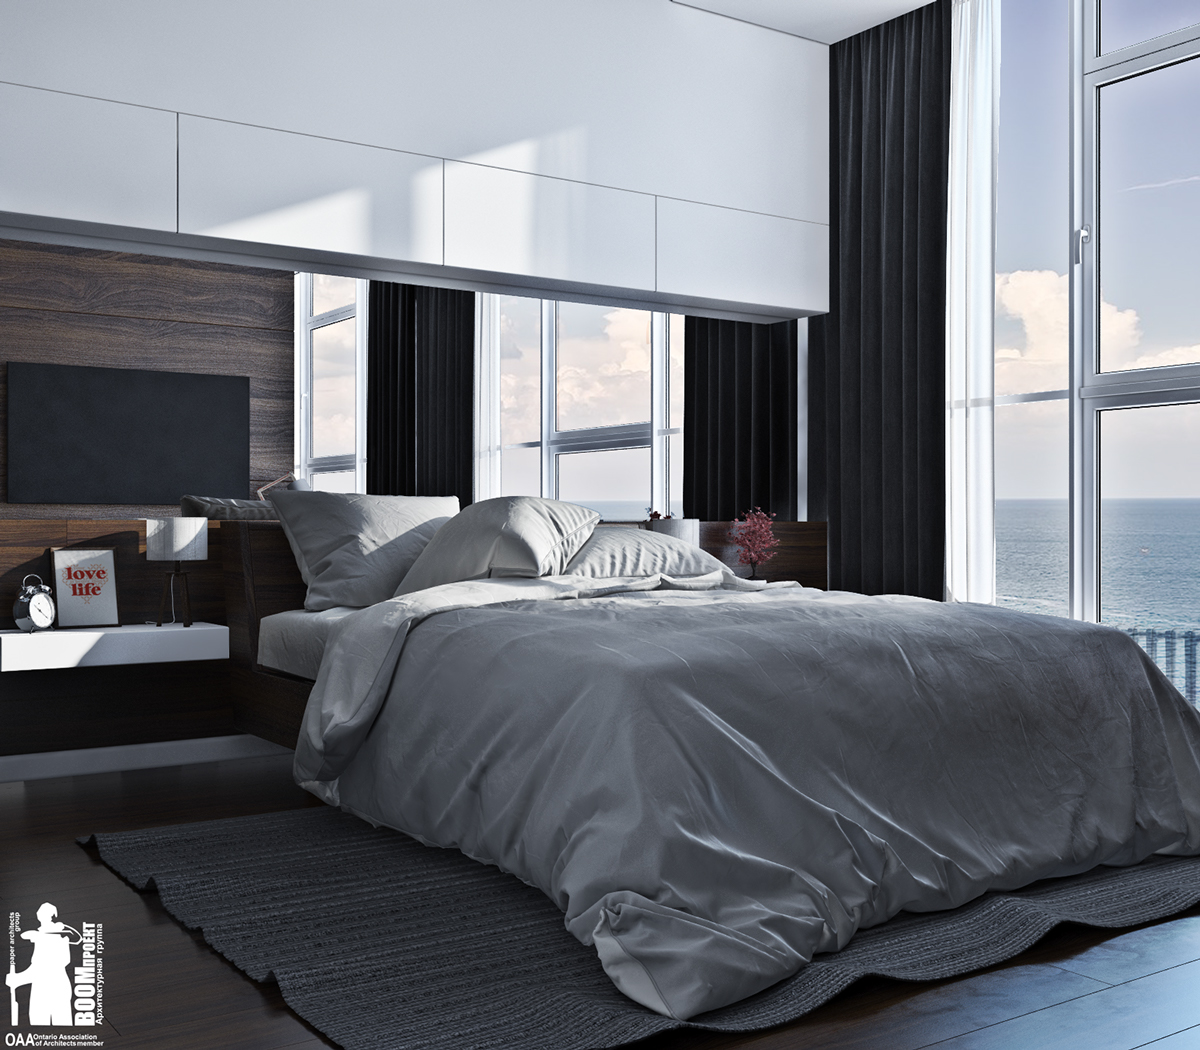 10 Clever Creative Shared Bedrooms Part 2: 7 Stylish Bedrooms With Lots Of Detail